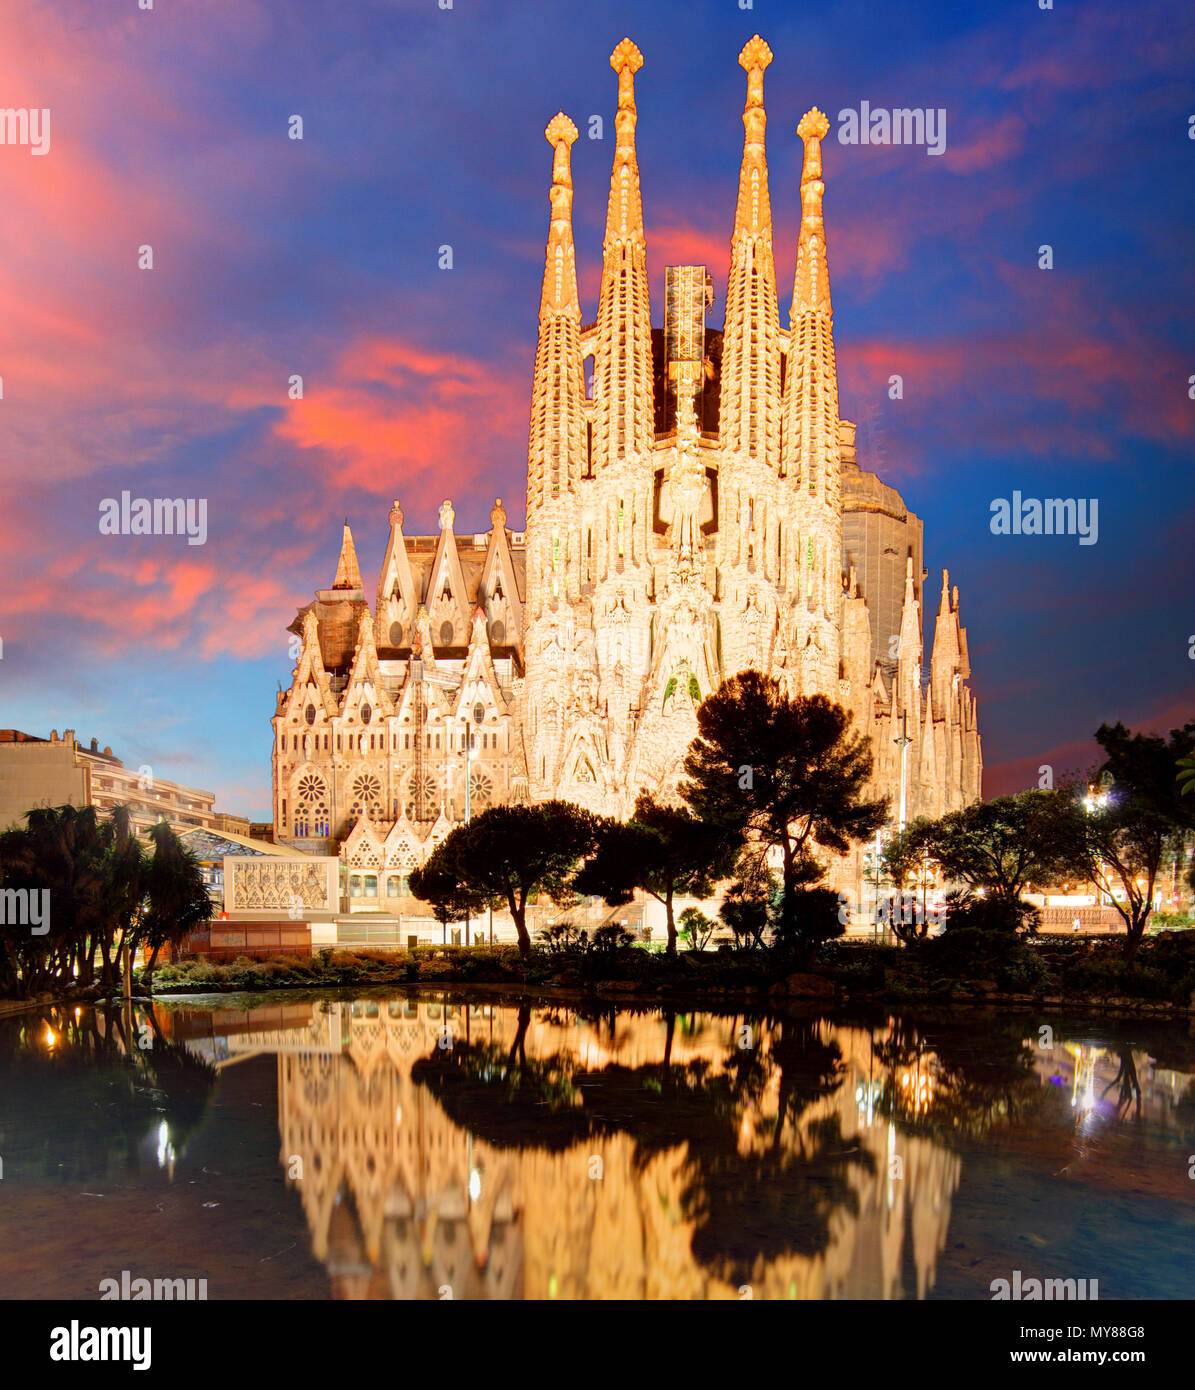 BARCELONA, SPAIN - FEB 10: View of the Sagrada Familia, a large Roman Catholic church in Barcelona, Spain, designed by Catalan architect Antoni Gaudi, - Stock Image